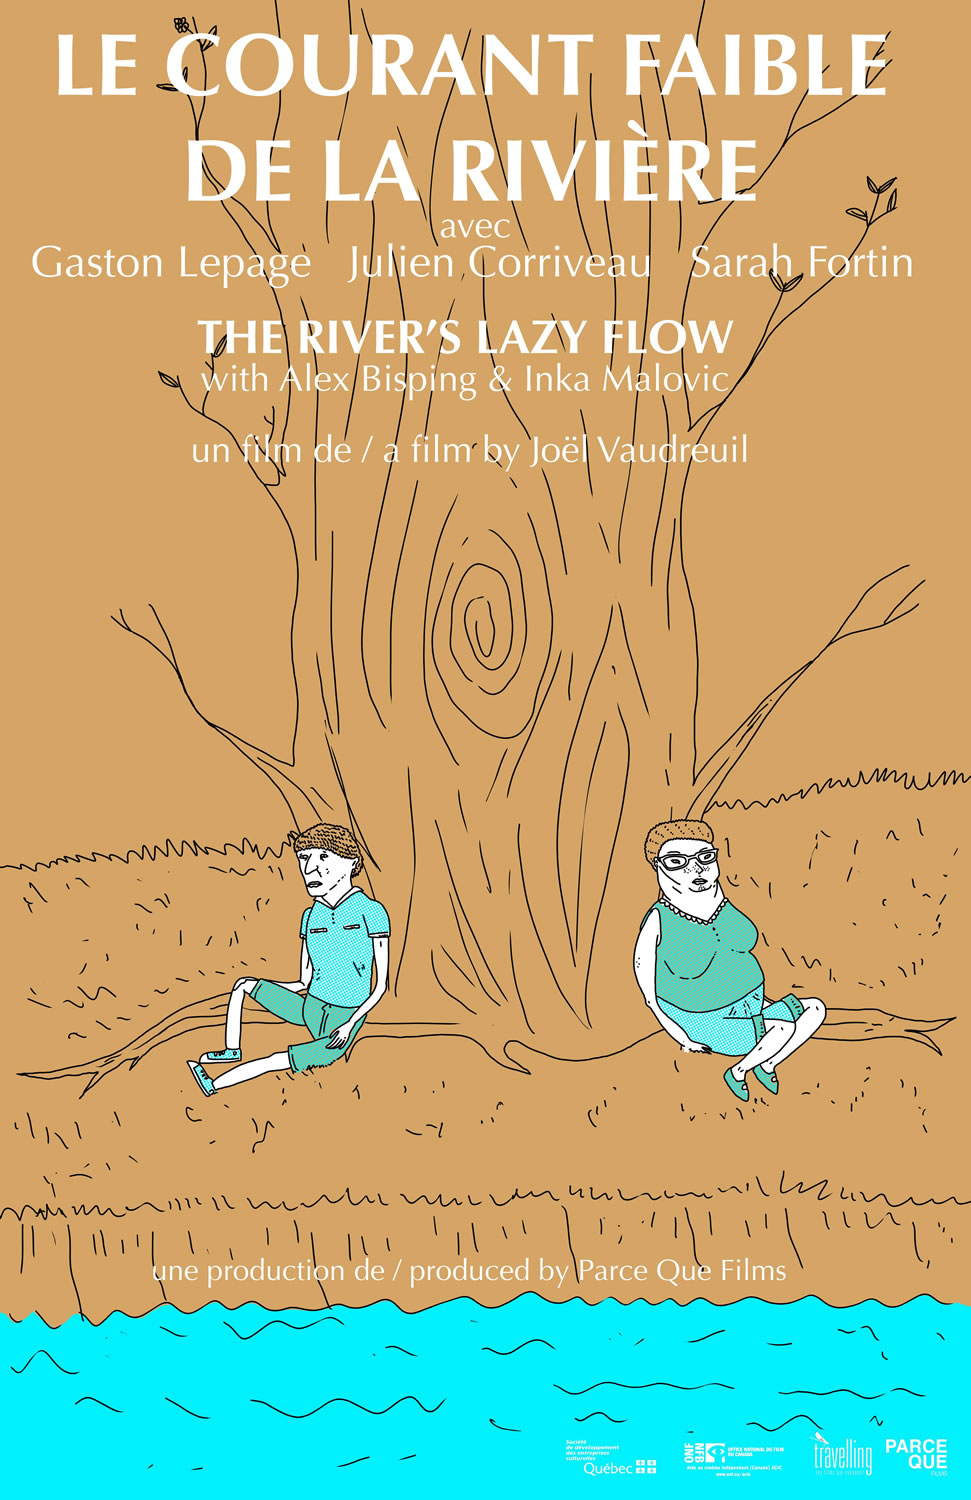 The River's Lazy Flow